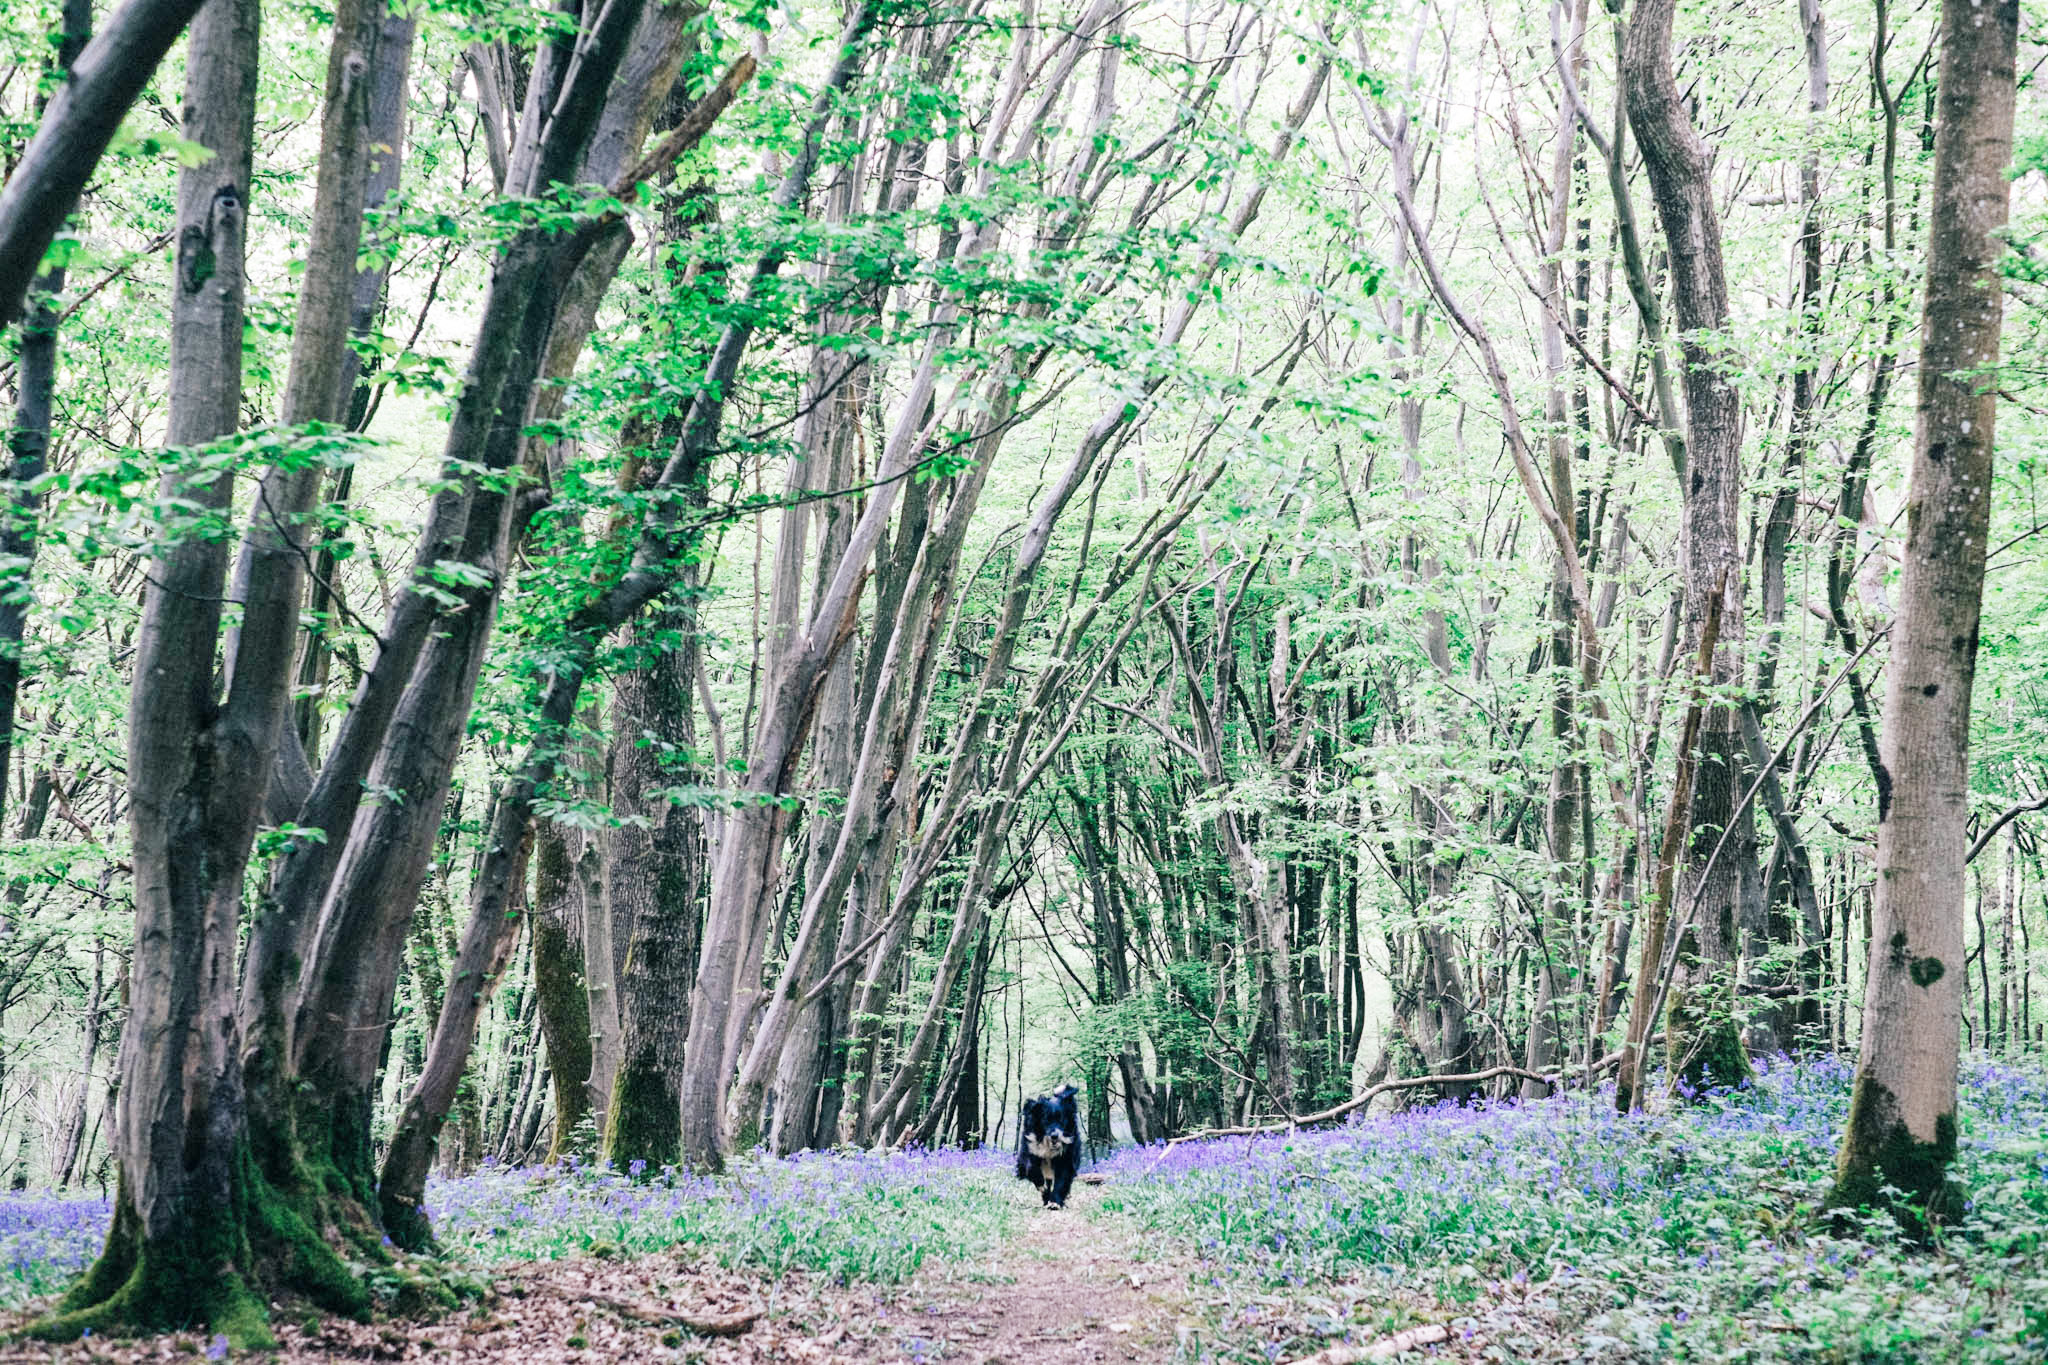 Blackbrook wood near Ditchling, East Sussex. Bluebell woods East Sussex. Sussex walks. Photography by Emma Gutteridge. Retreat // a food and lifestyle blog born in Sussex.